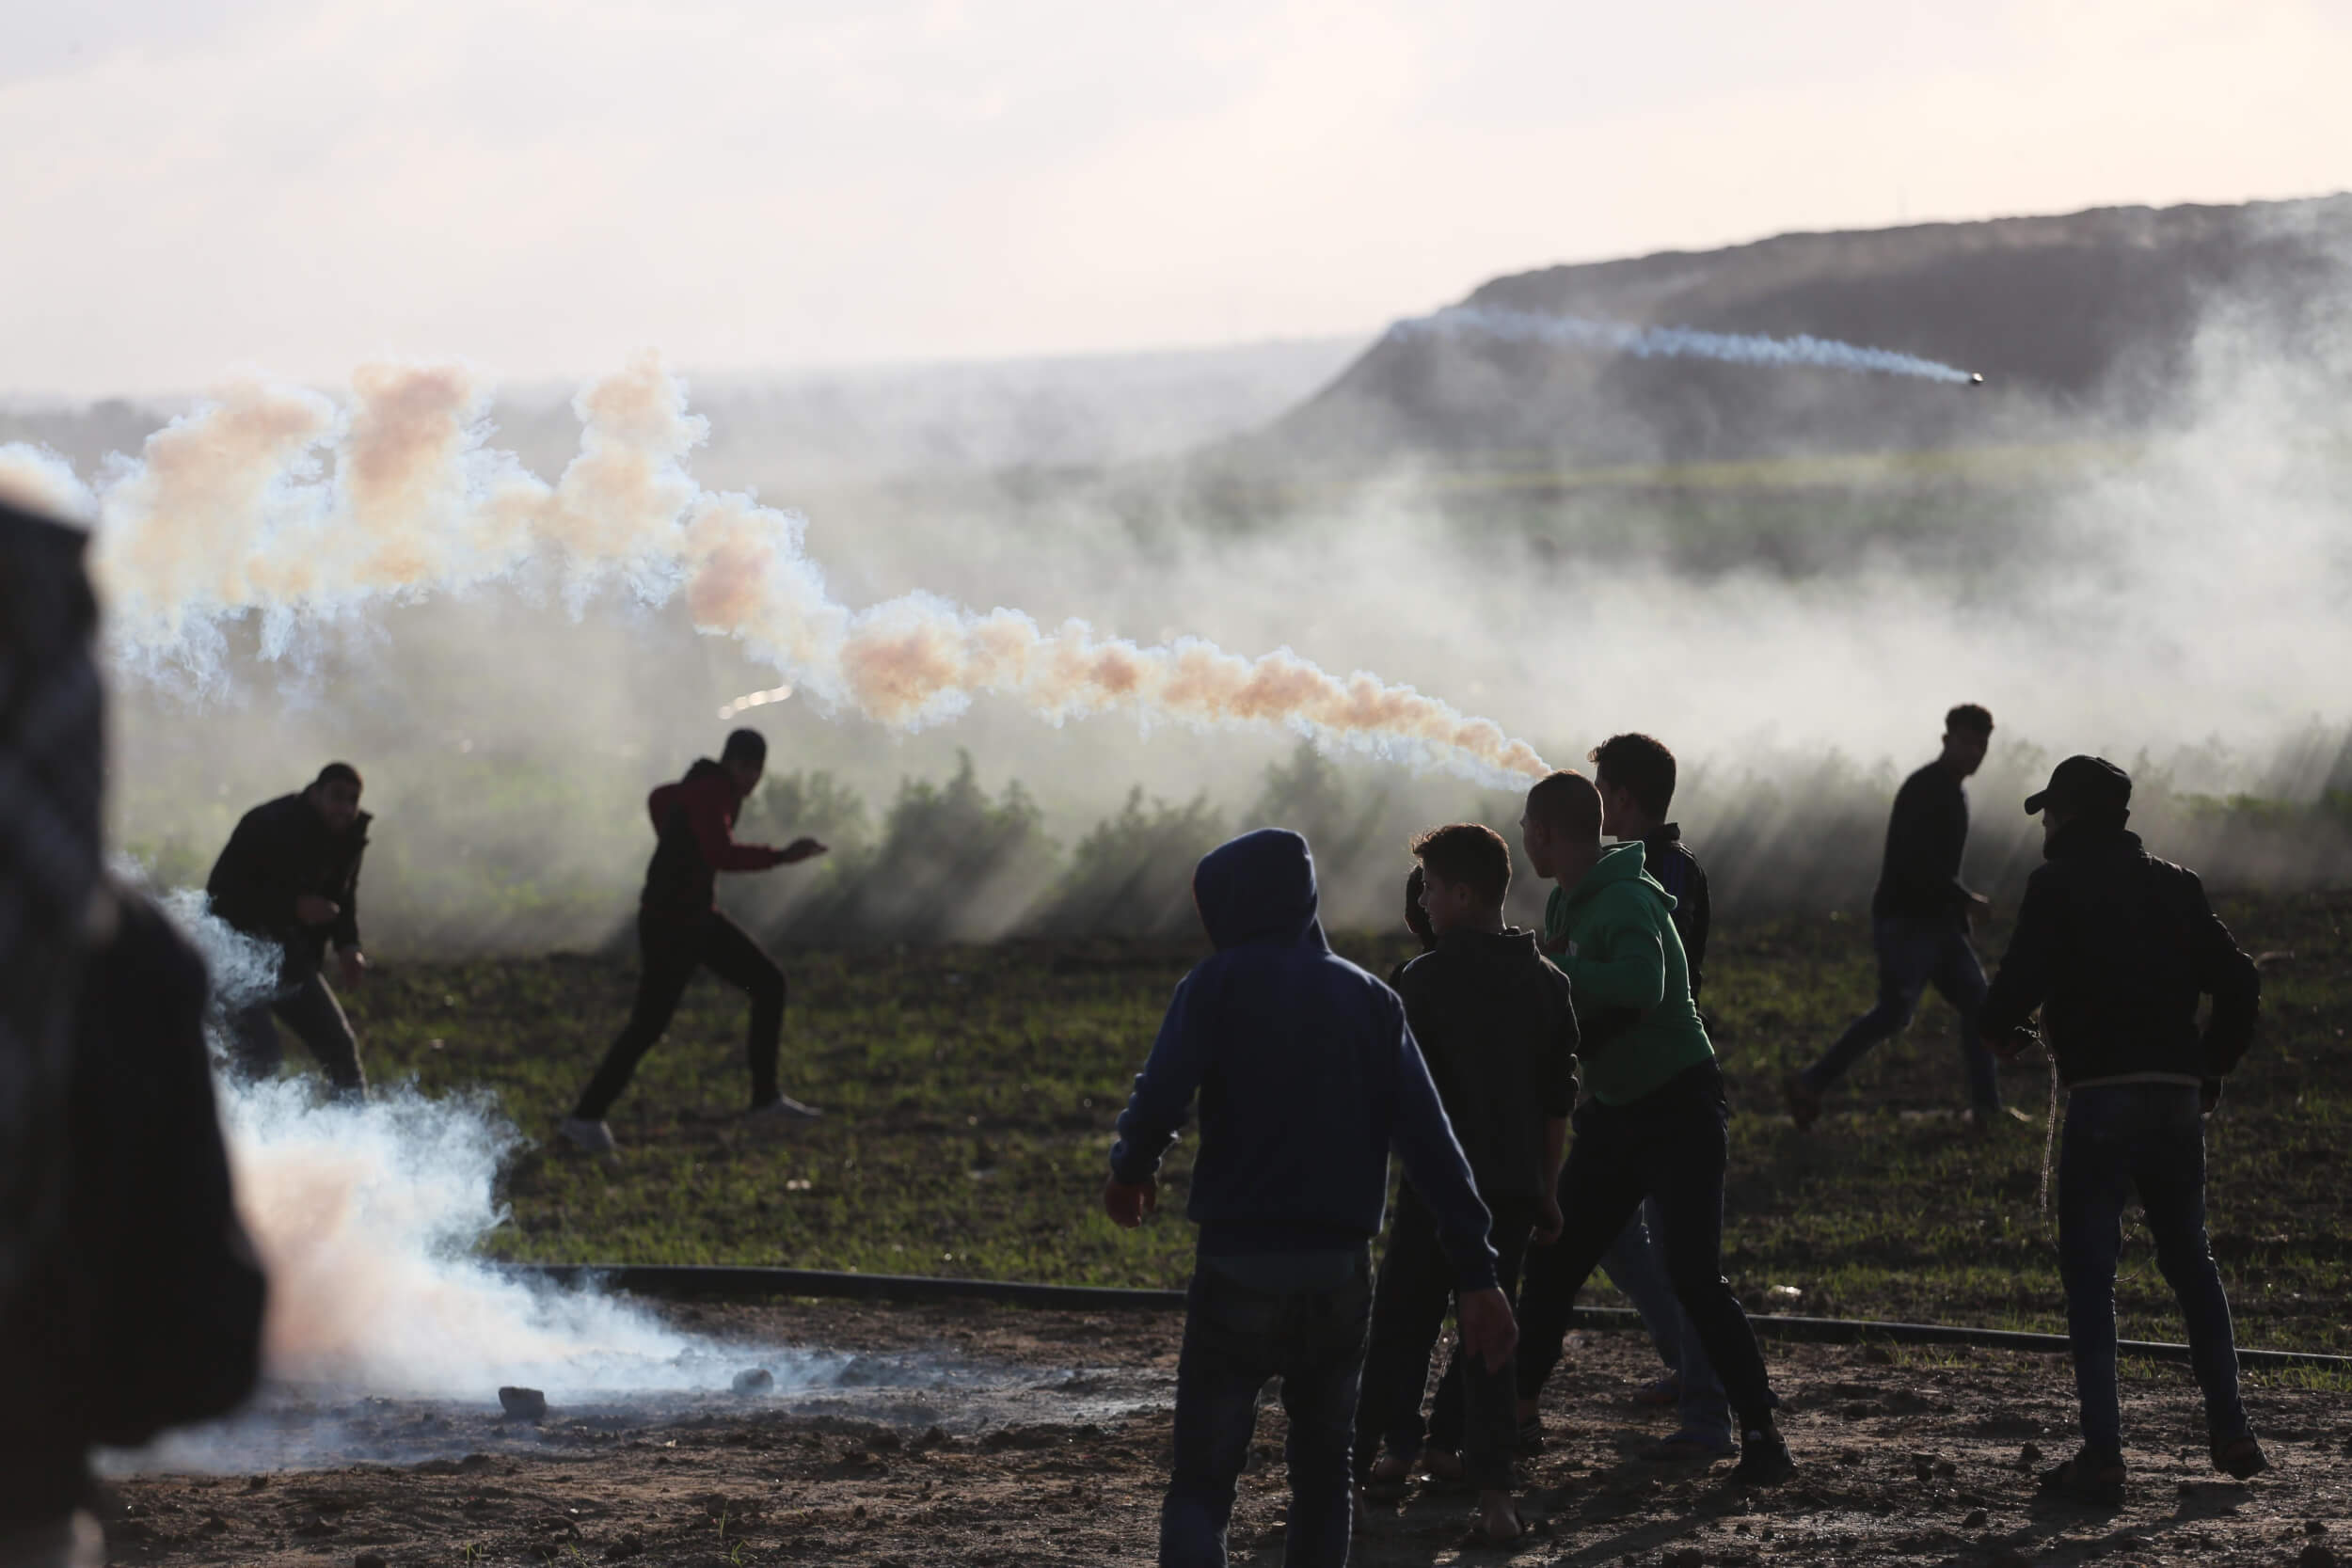 Palestinian man of 25 is shot dead during protests at Gaza